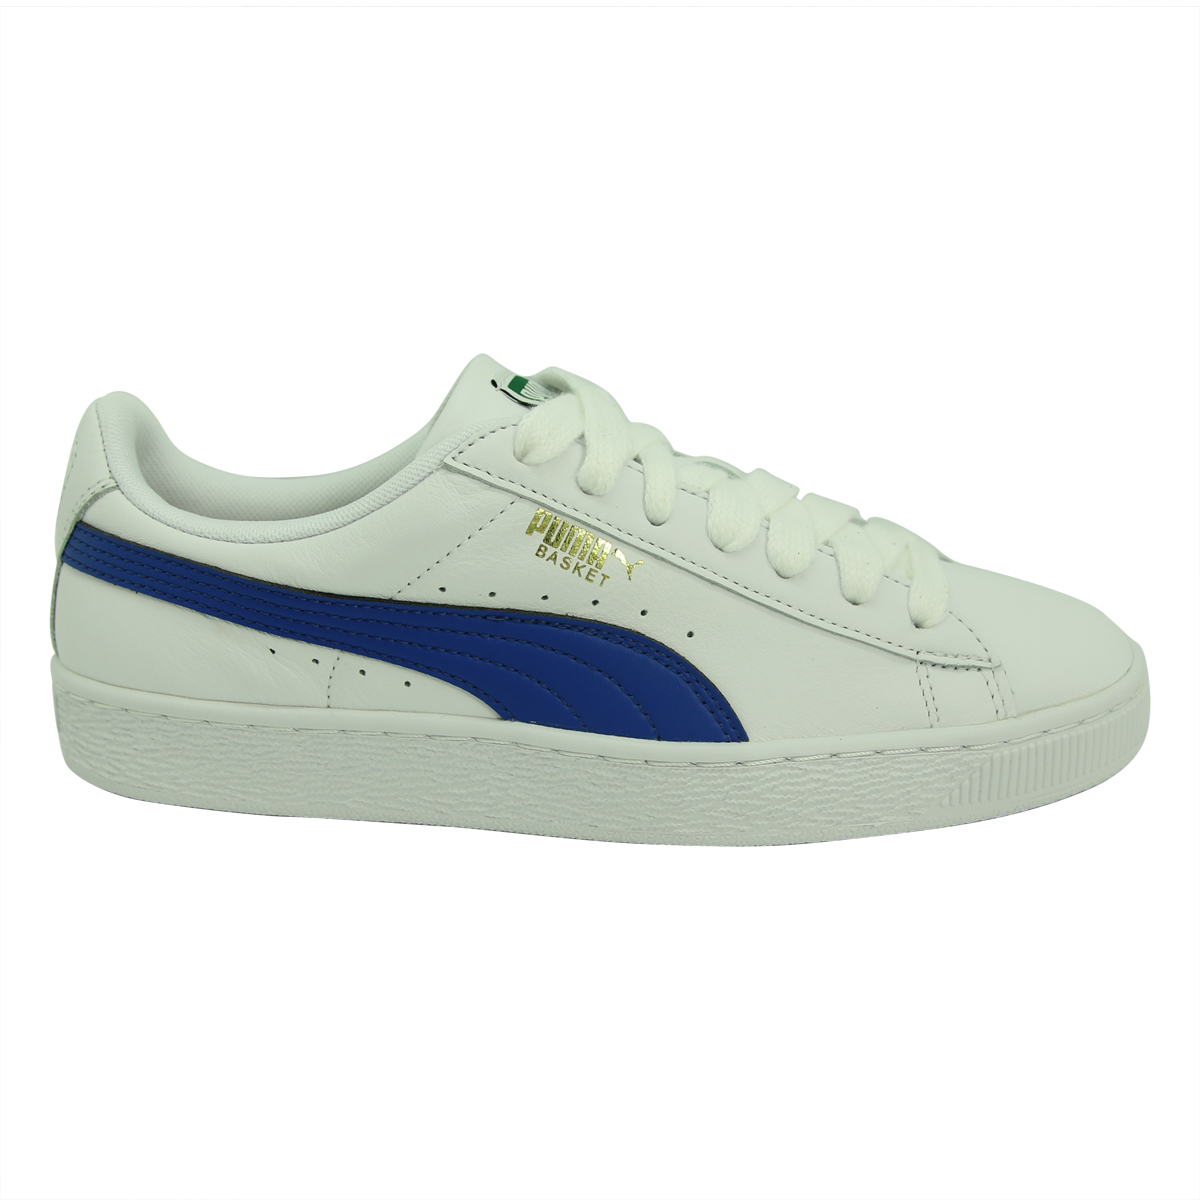 d1da159fff7 Puma BASKET CLASSIC LFS Leather Men Sneakers Shoes